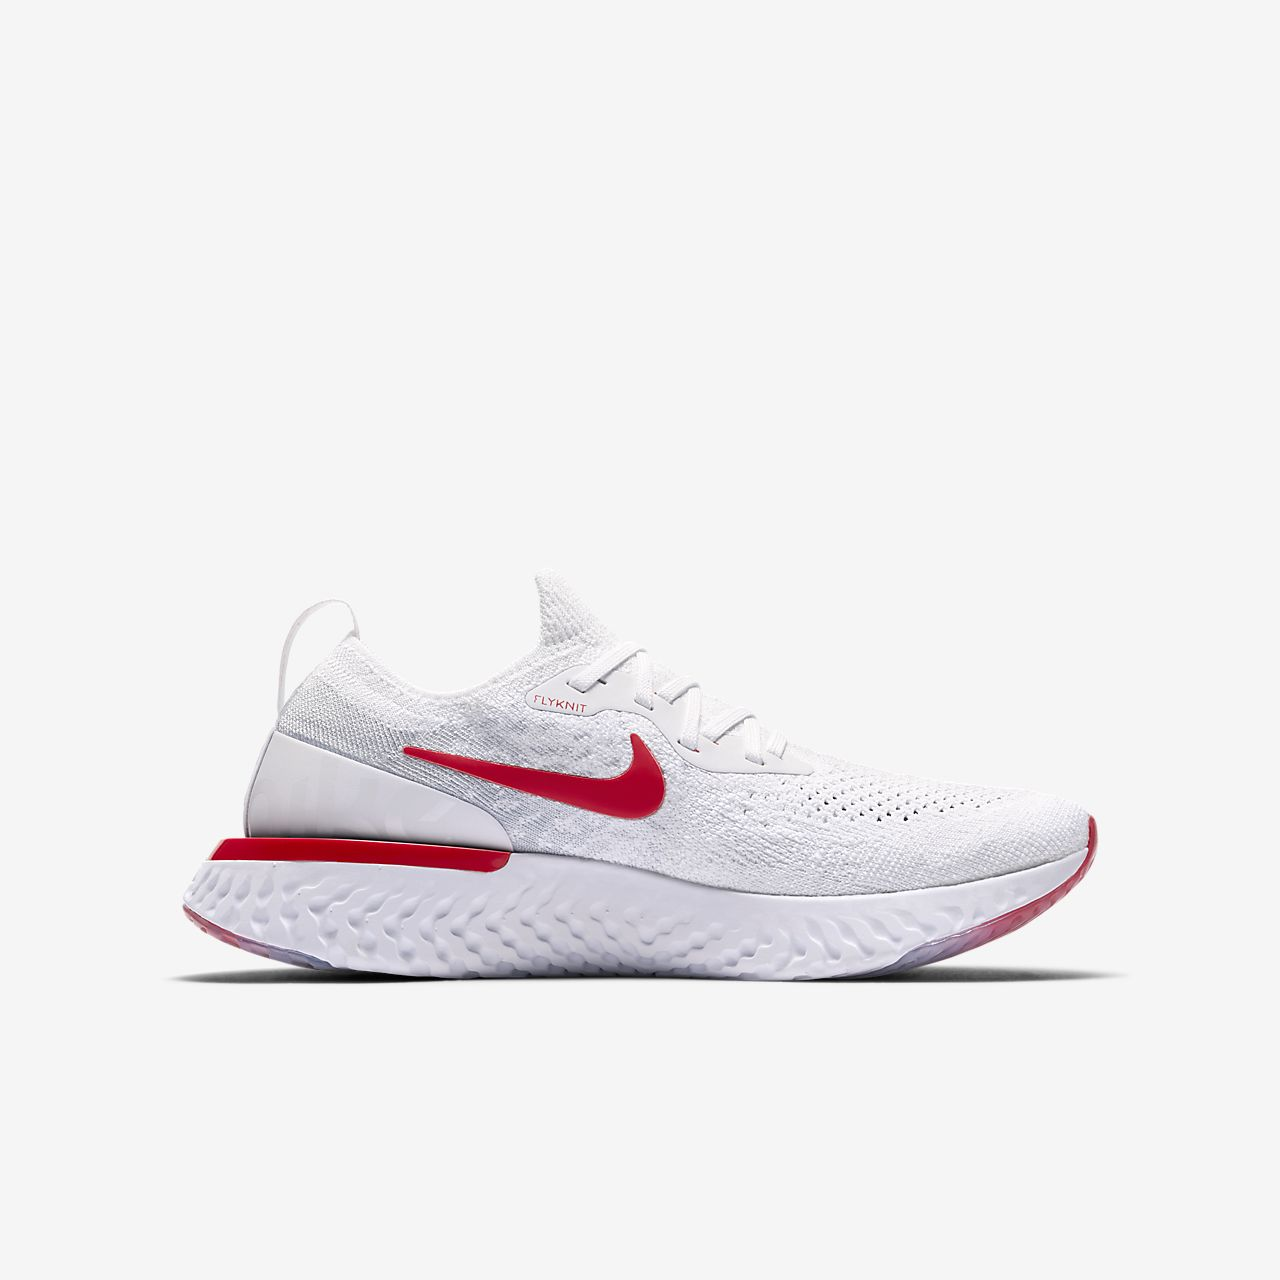 19a80759cf98 inexpensive nike free hypervenom 2 eastbay 56d06 5cc4d  discount code for nike  epic react flyknit red running shoes outlet extremely discount hot sale free